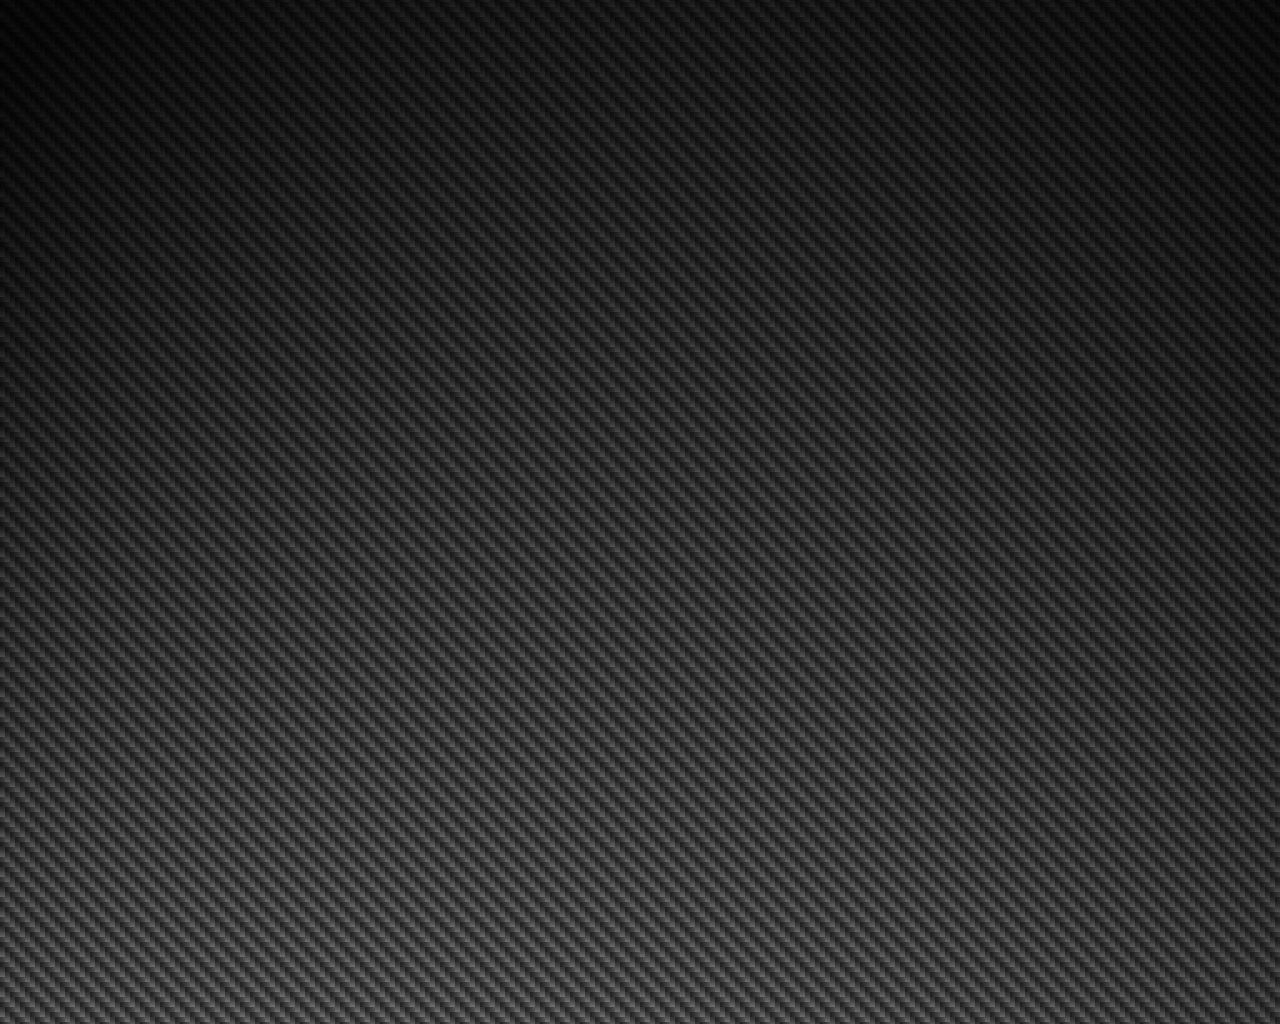 free! carbon fiber wallpaper | pinterest | textured wallpaper and